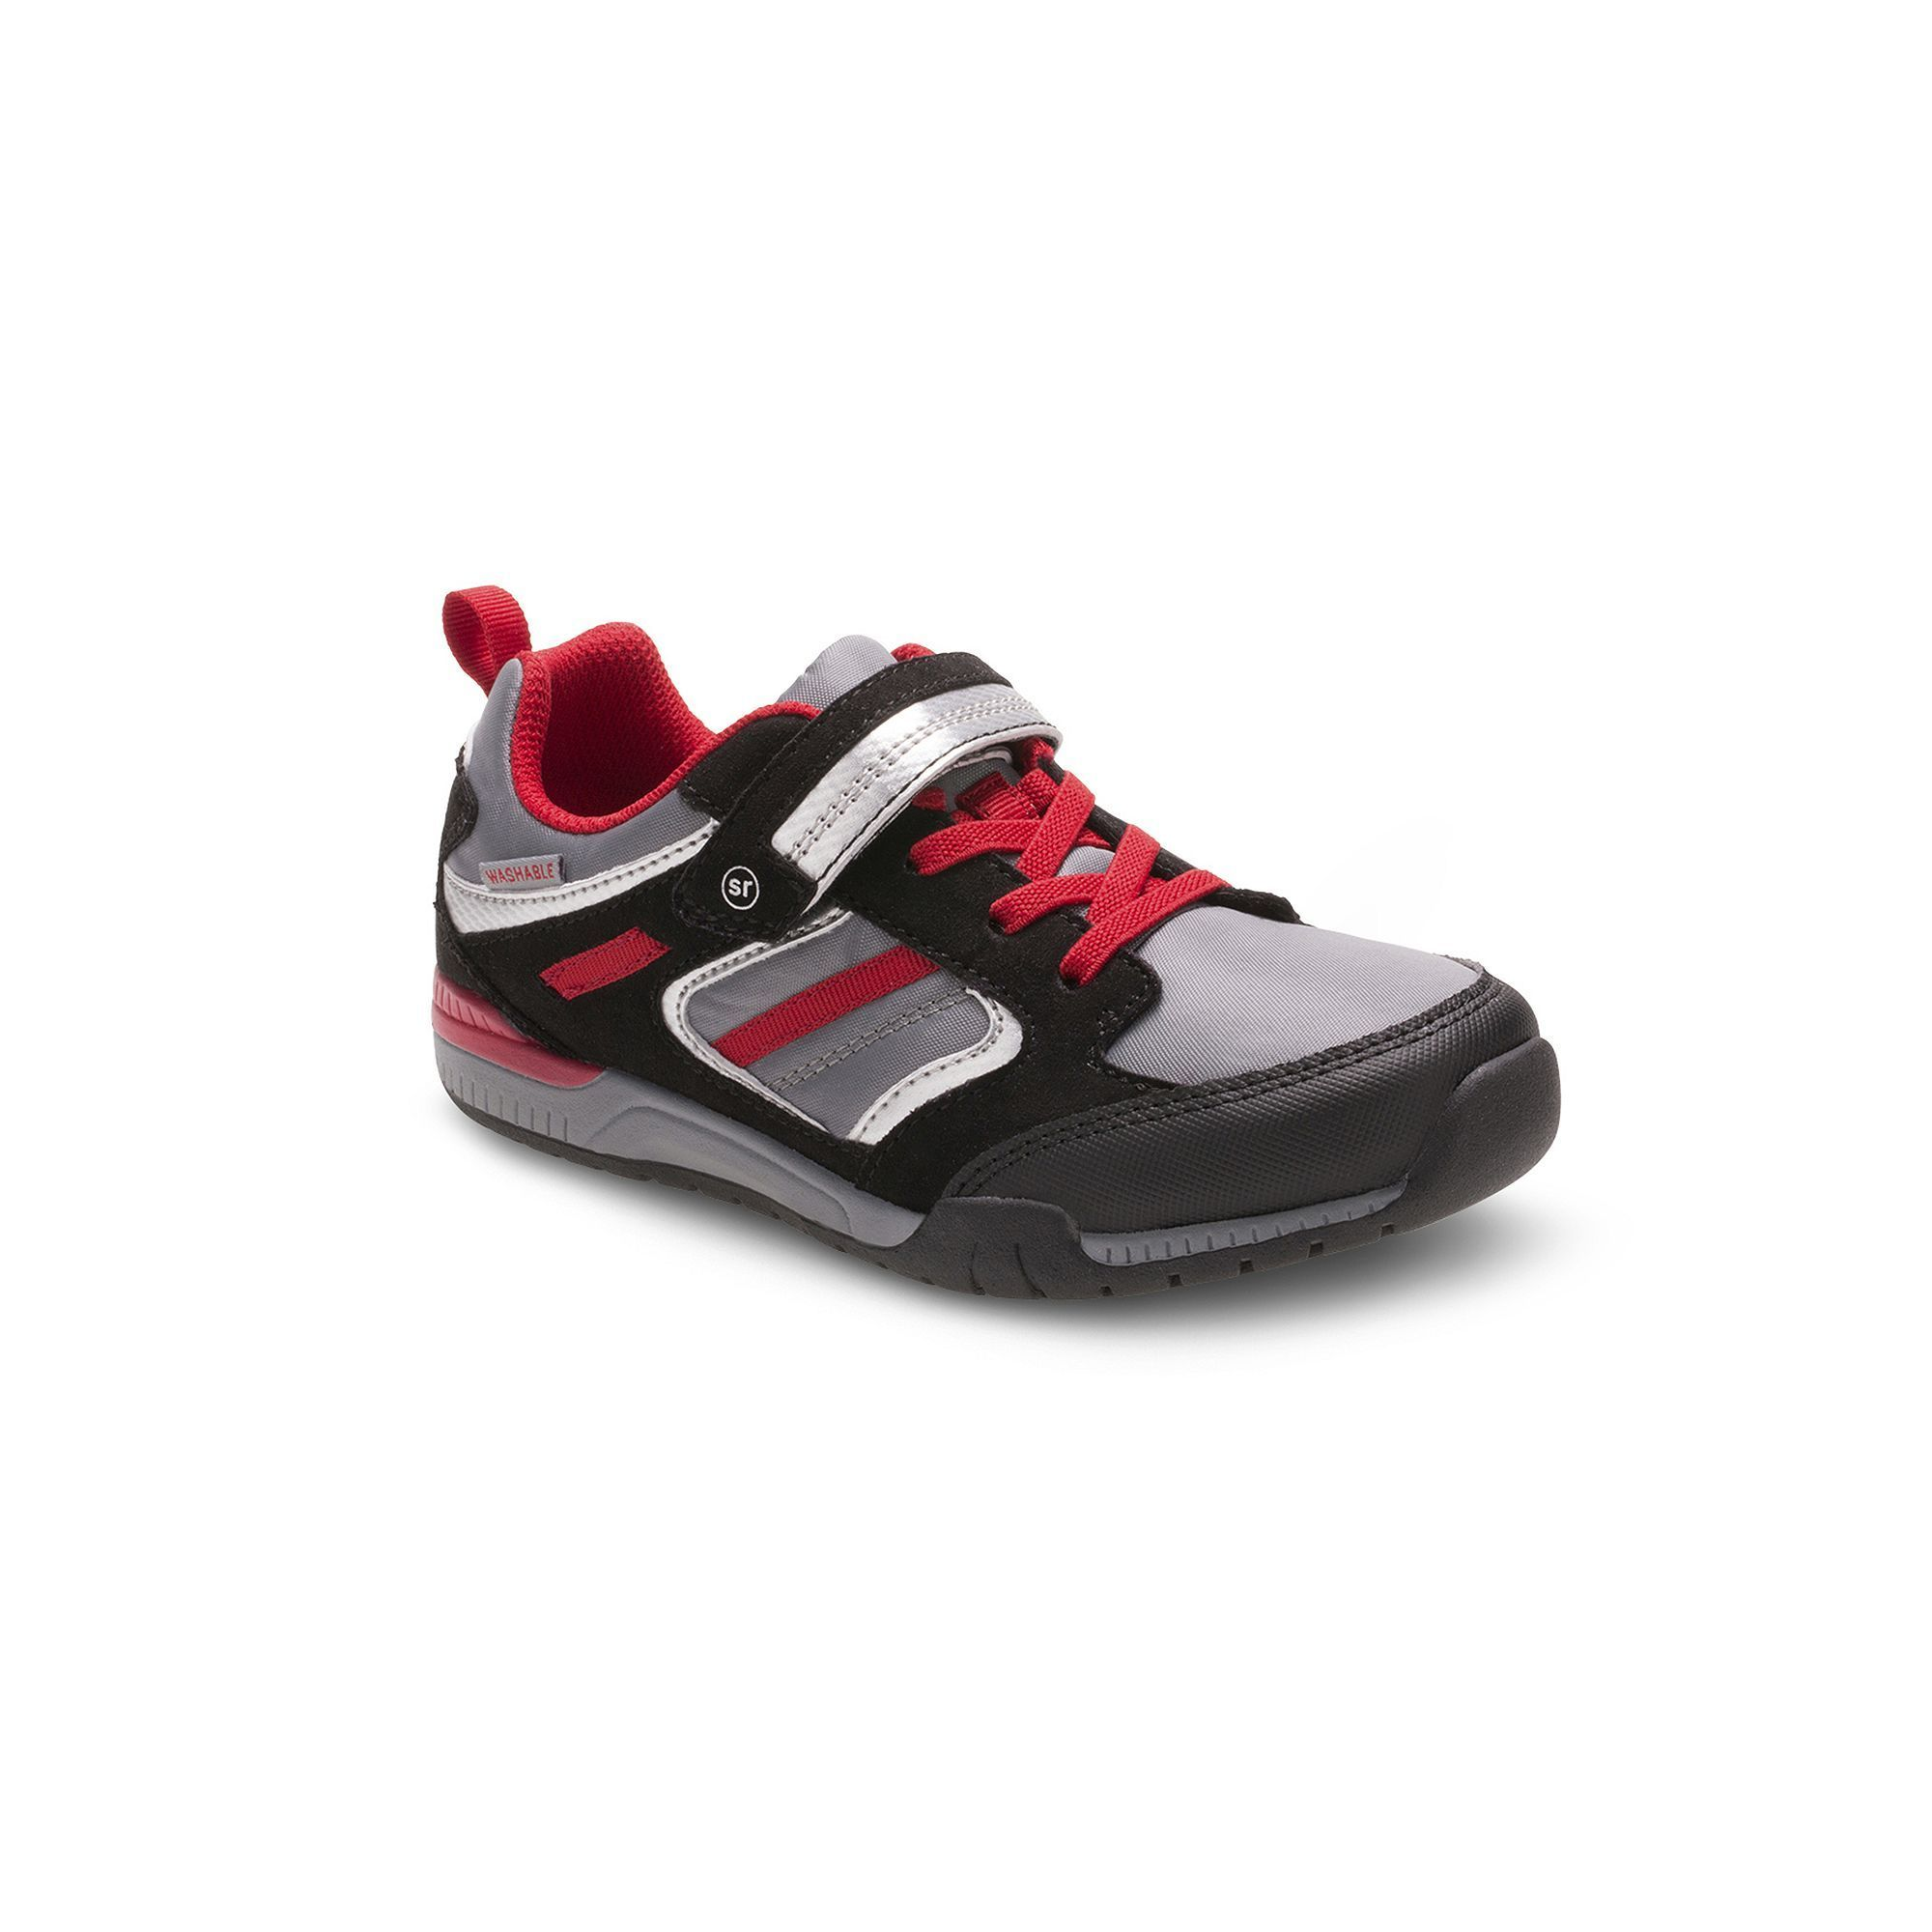 Stride Rite Made 2 Play Dwyer Toddler Boys Sneakers Size 5 T Wide